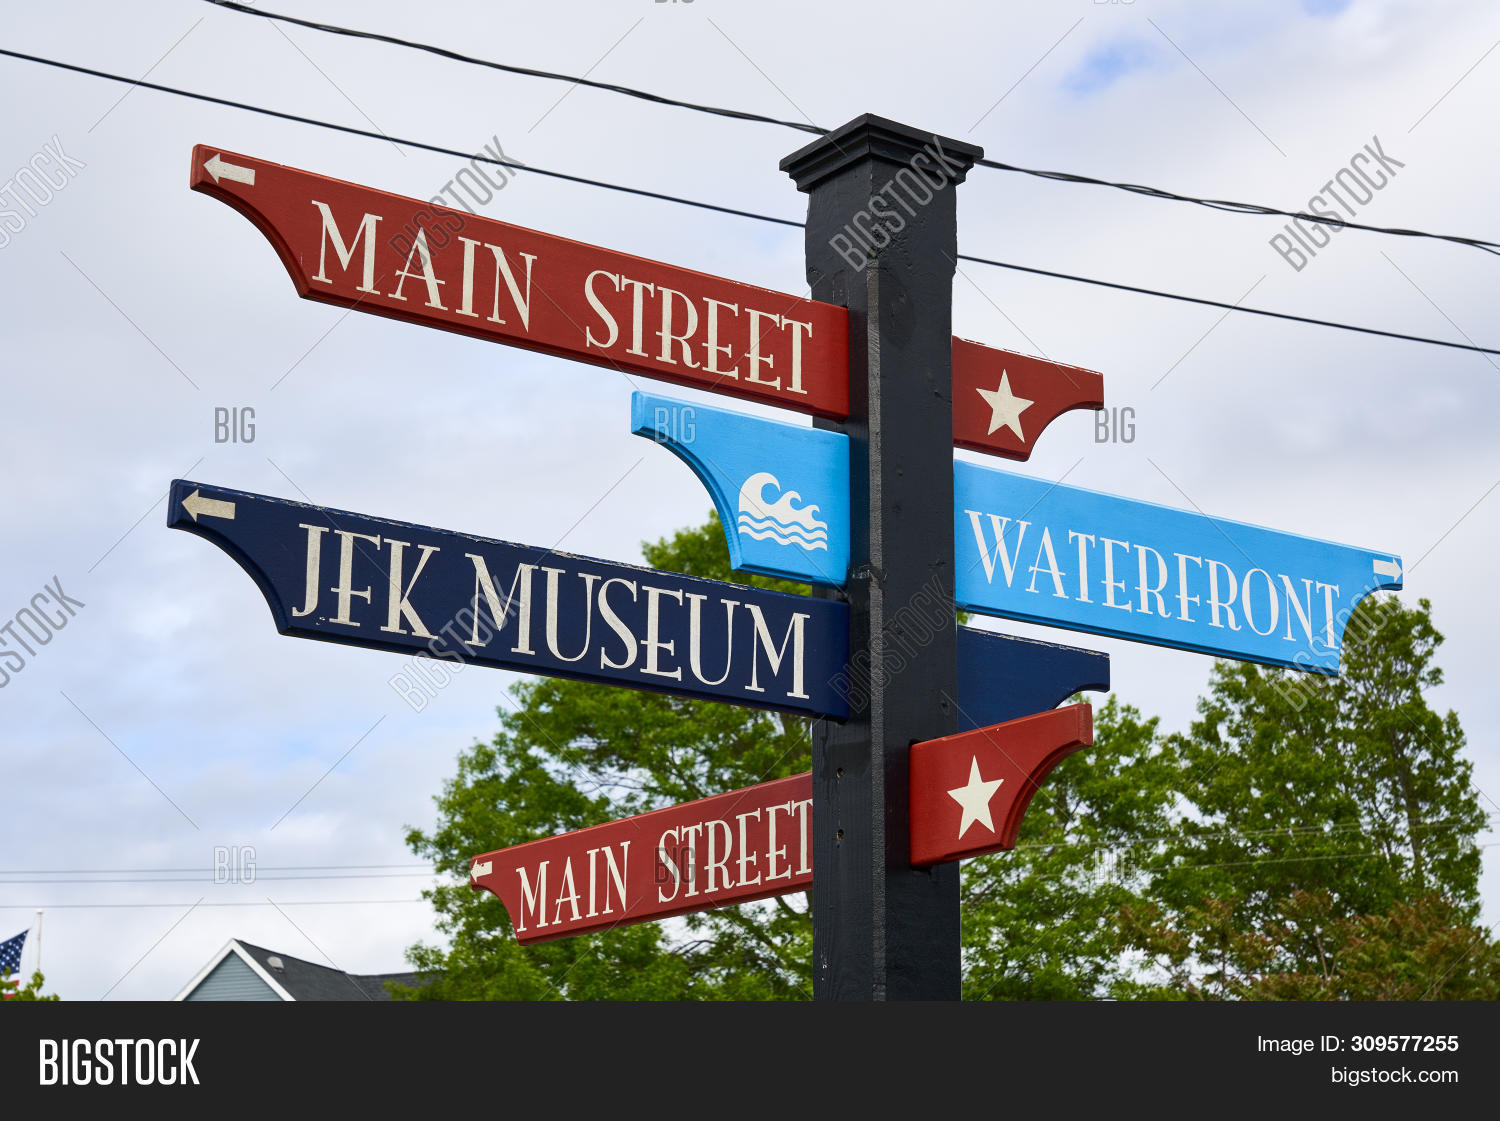 Barnstable,Hyannis,JFK,Museum,america,american,architecture,blue,cape,city,cod,colorful,direction,information,location,ma,massachusetts,outside,post,red,sign,states,street,tourism,town,travel,united,usa,waterfront